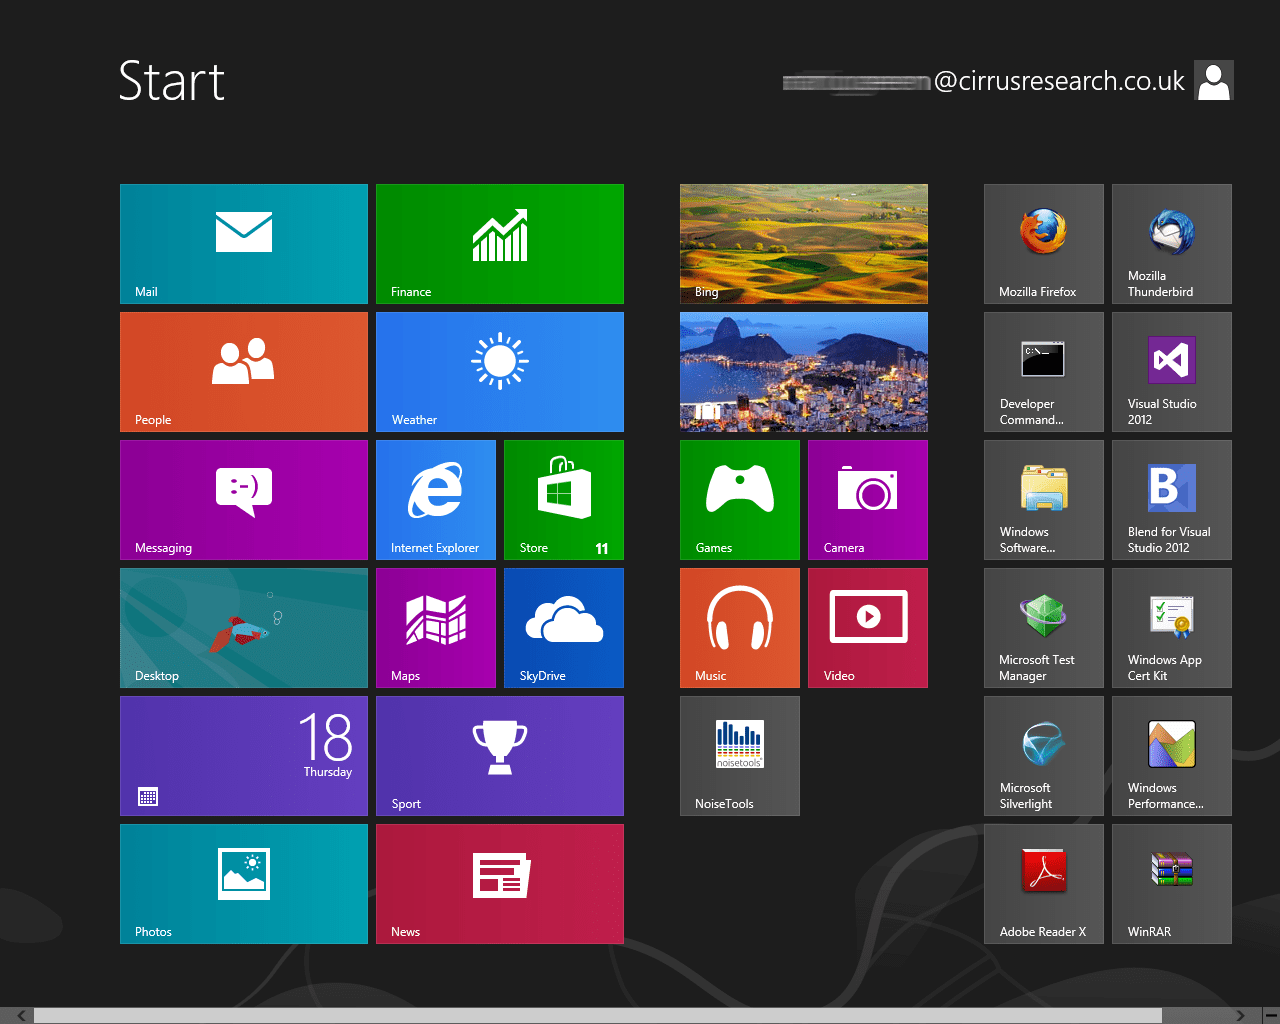 NoiseTools is now compatible with Windows 8 - NoiseNews